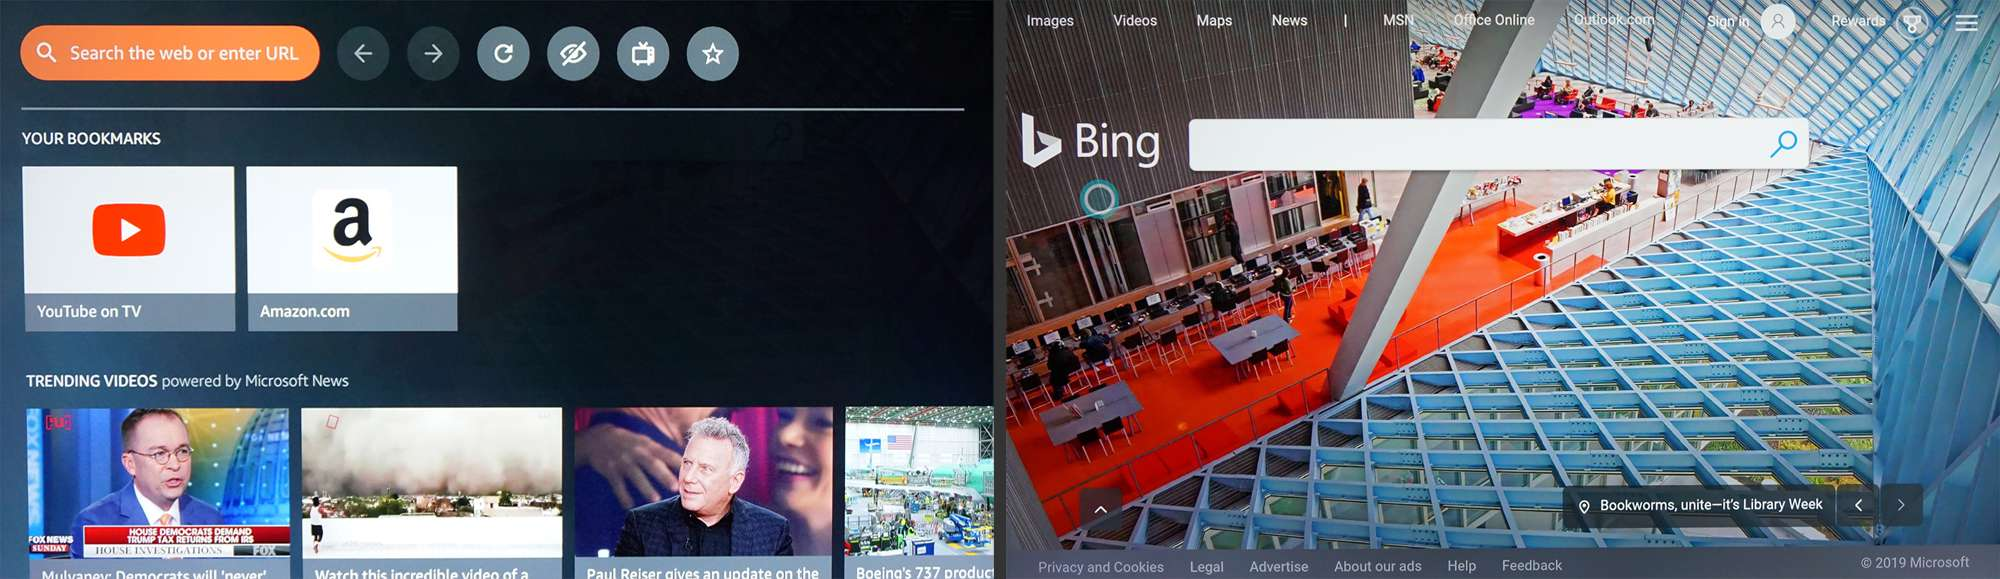 Fire TV – Silk Web Browser with Bing Search